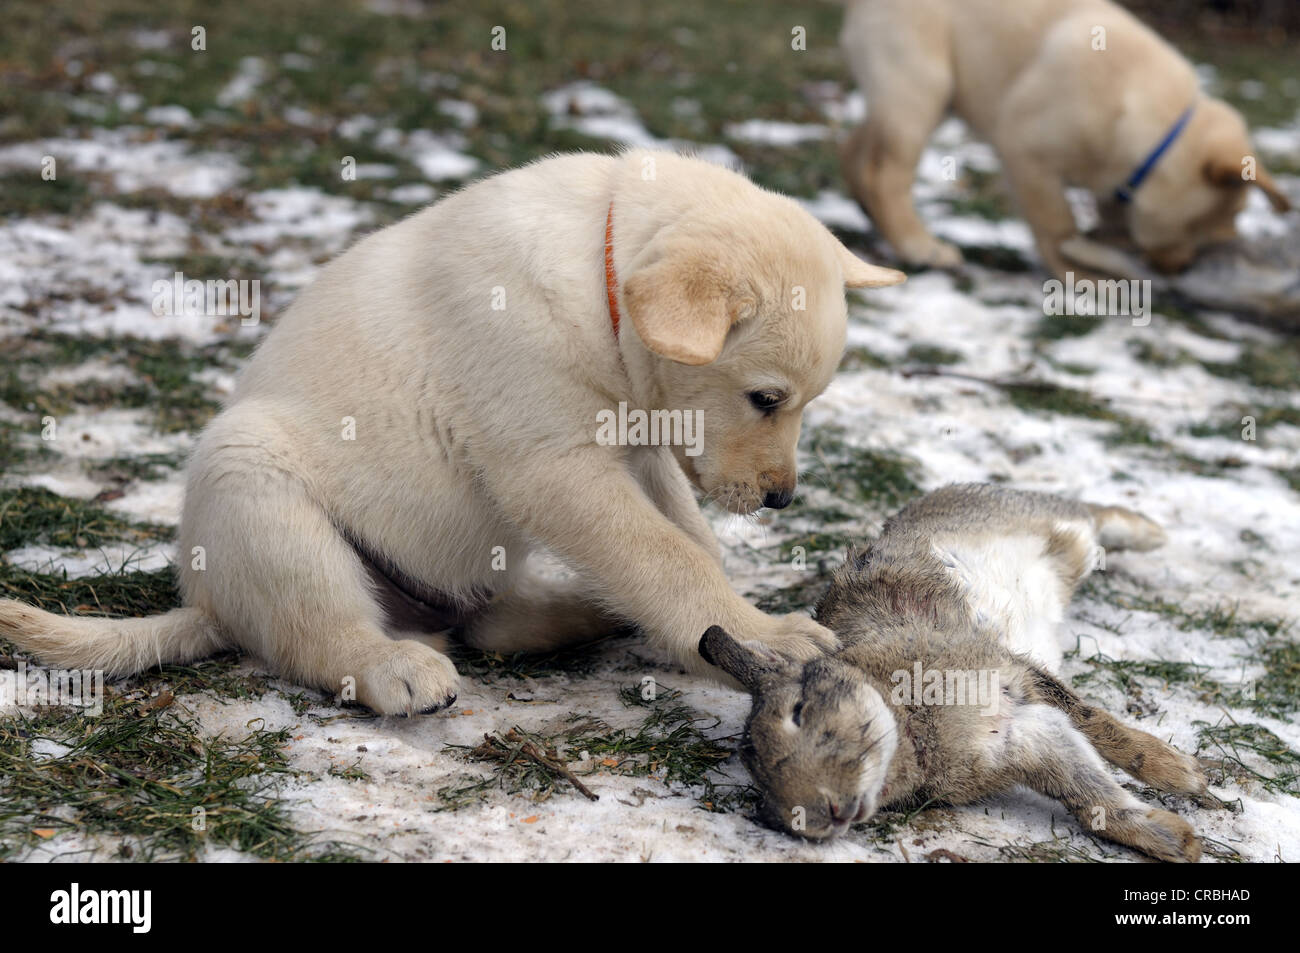 Blonde Labrador Retriever puppy with a rabbit as raw diet - Stock Image